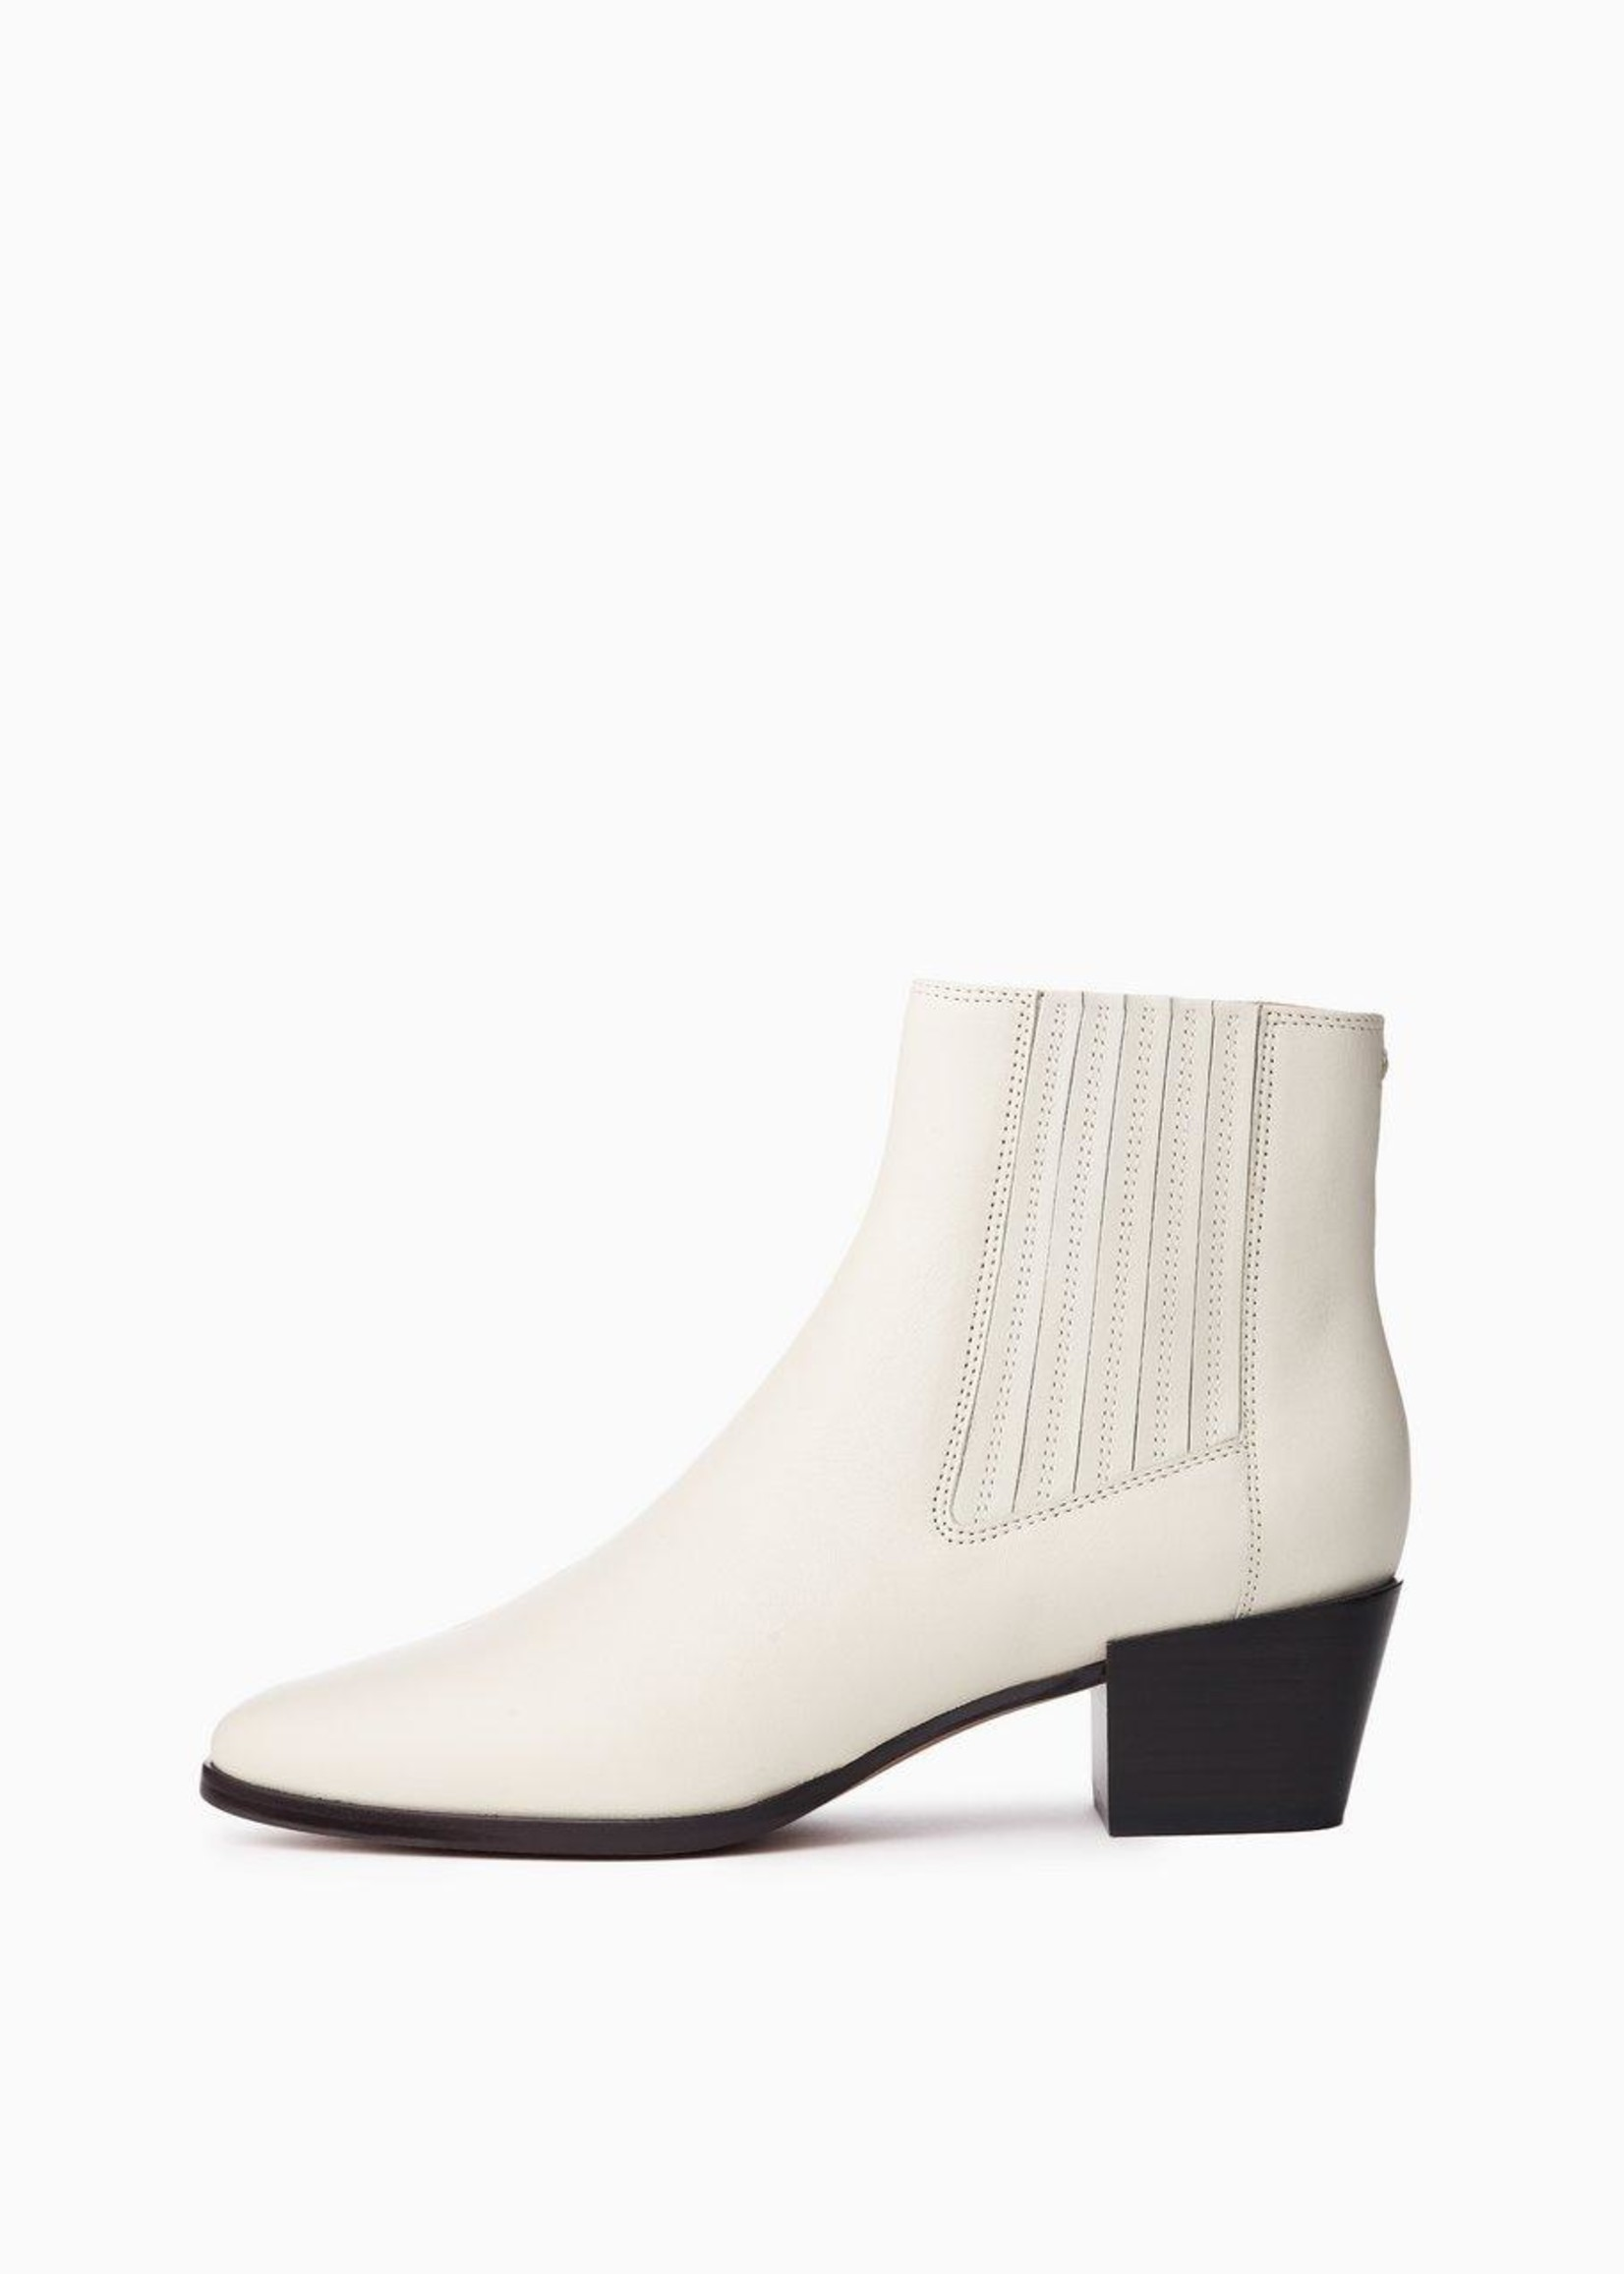 RAG & BONE ROVER BOOT - SMOOTH LEATHER